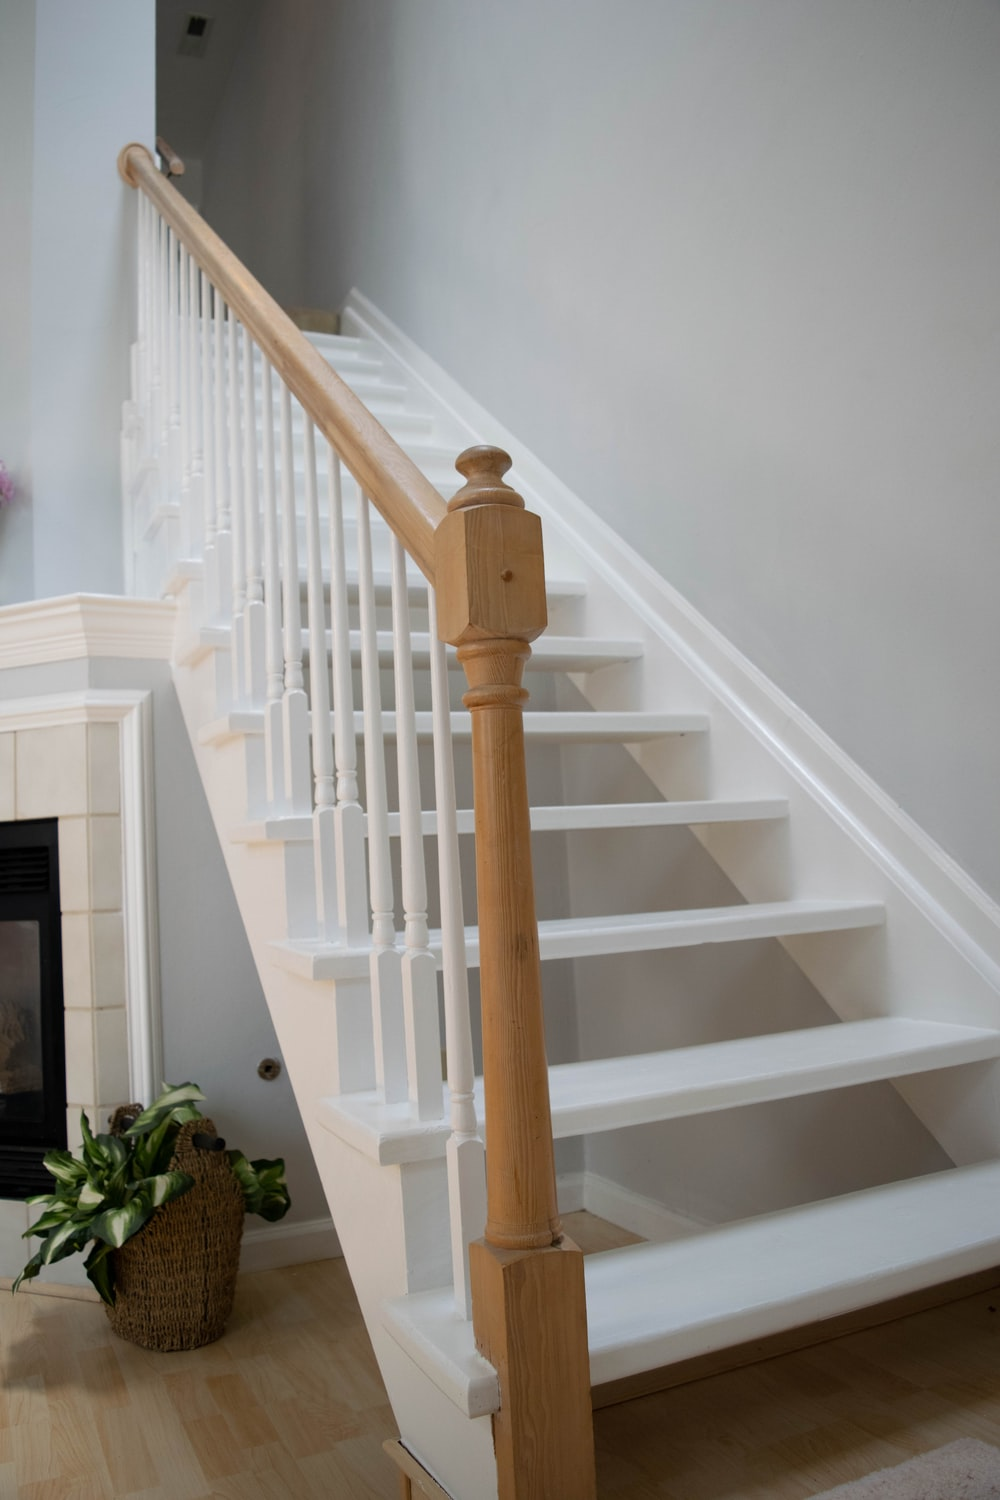 How To Refinish A Staircase For Under $50?